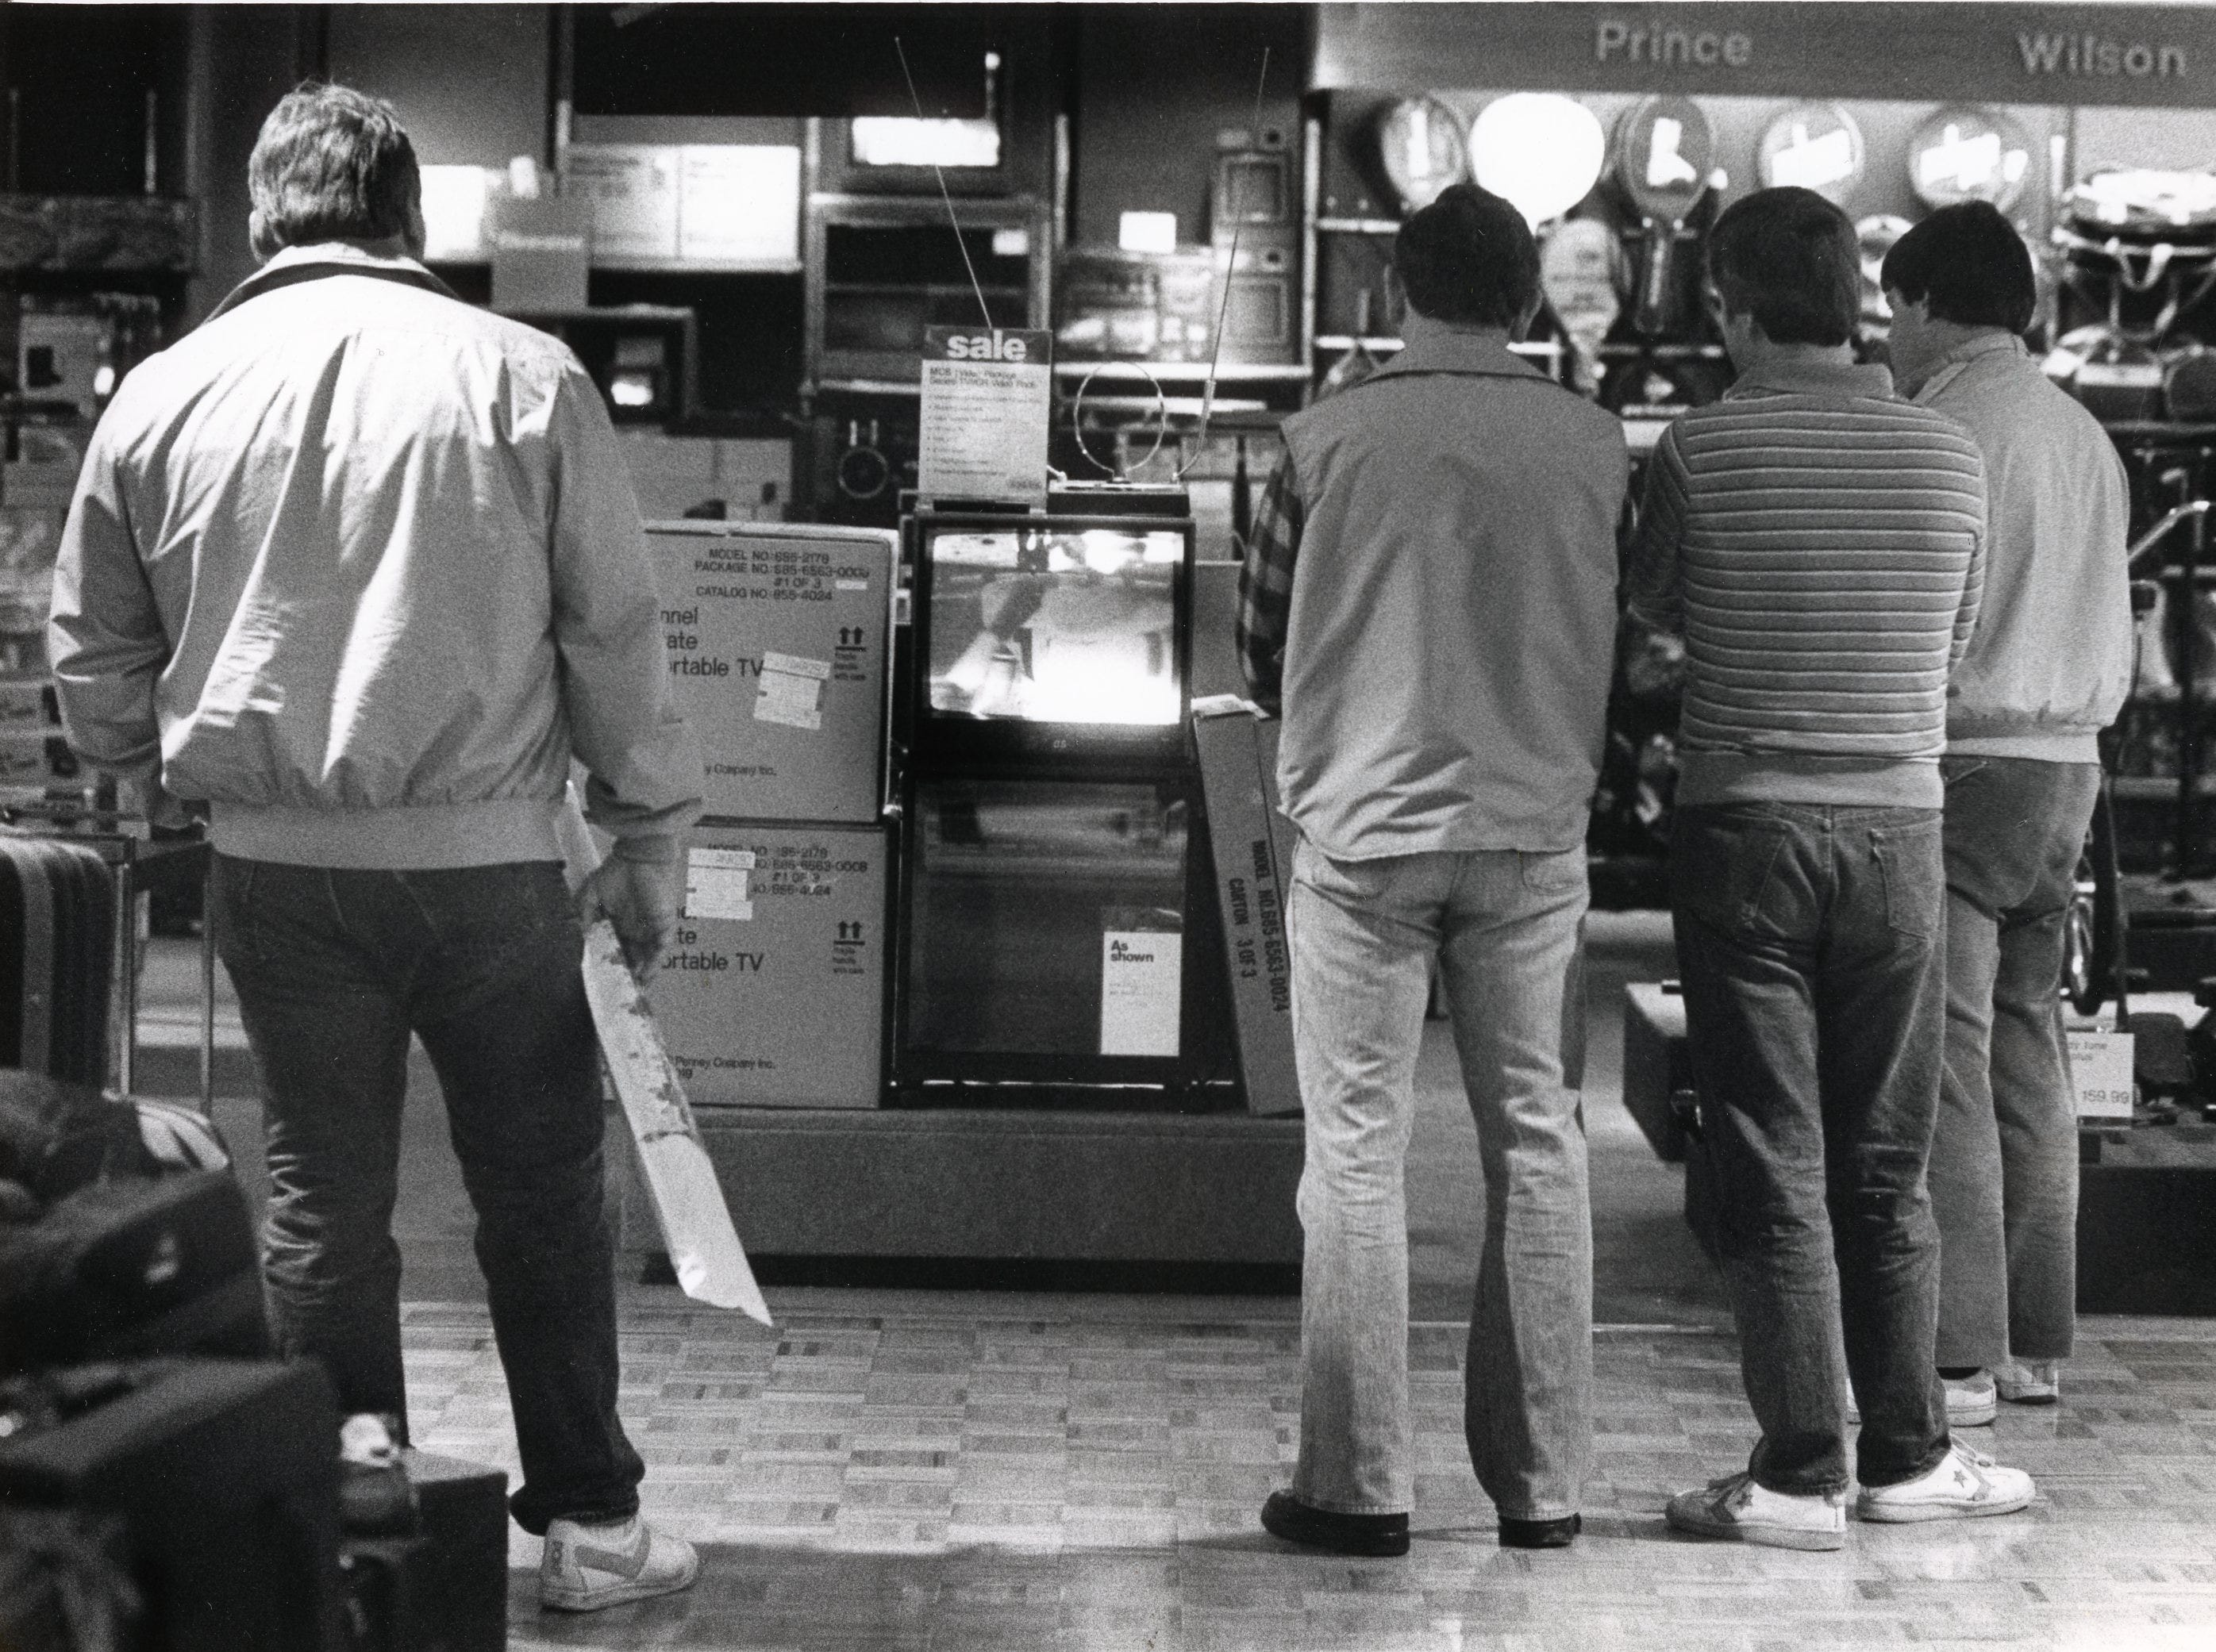 Football fans gather in front of a television display at J.C. Penney on New Years Day while wives shop.